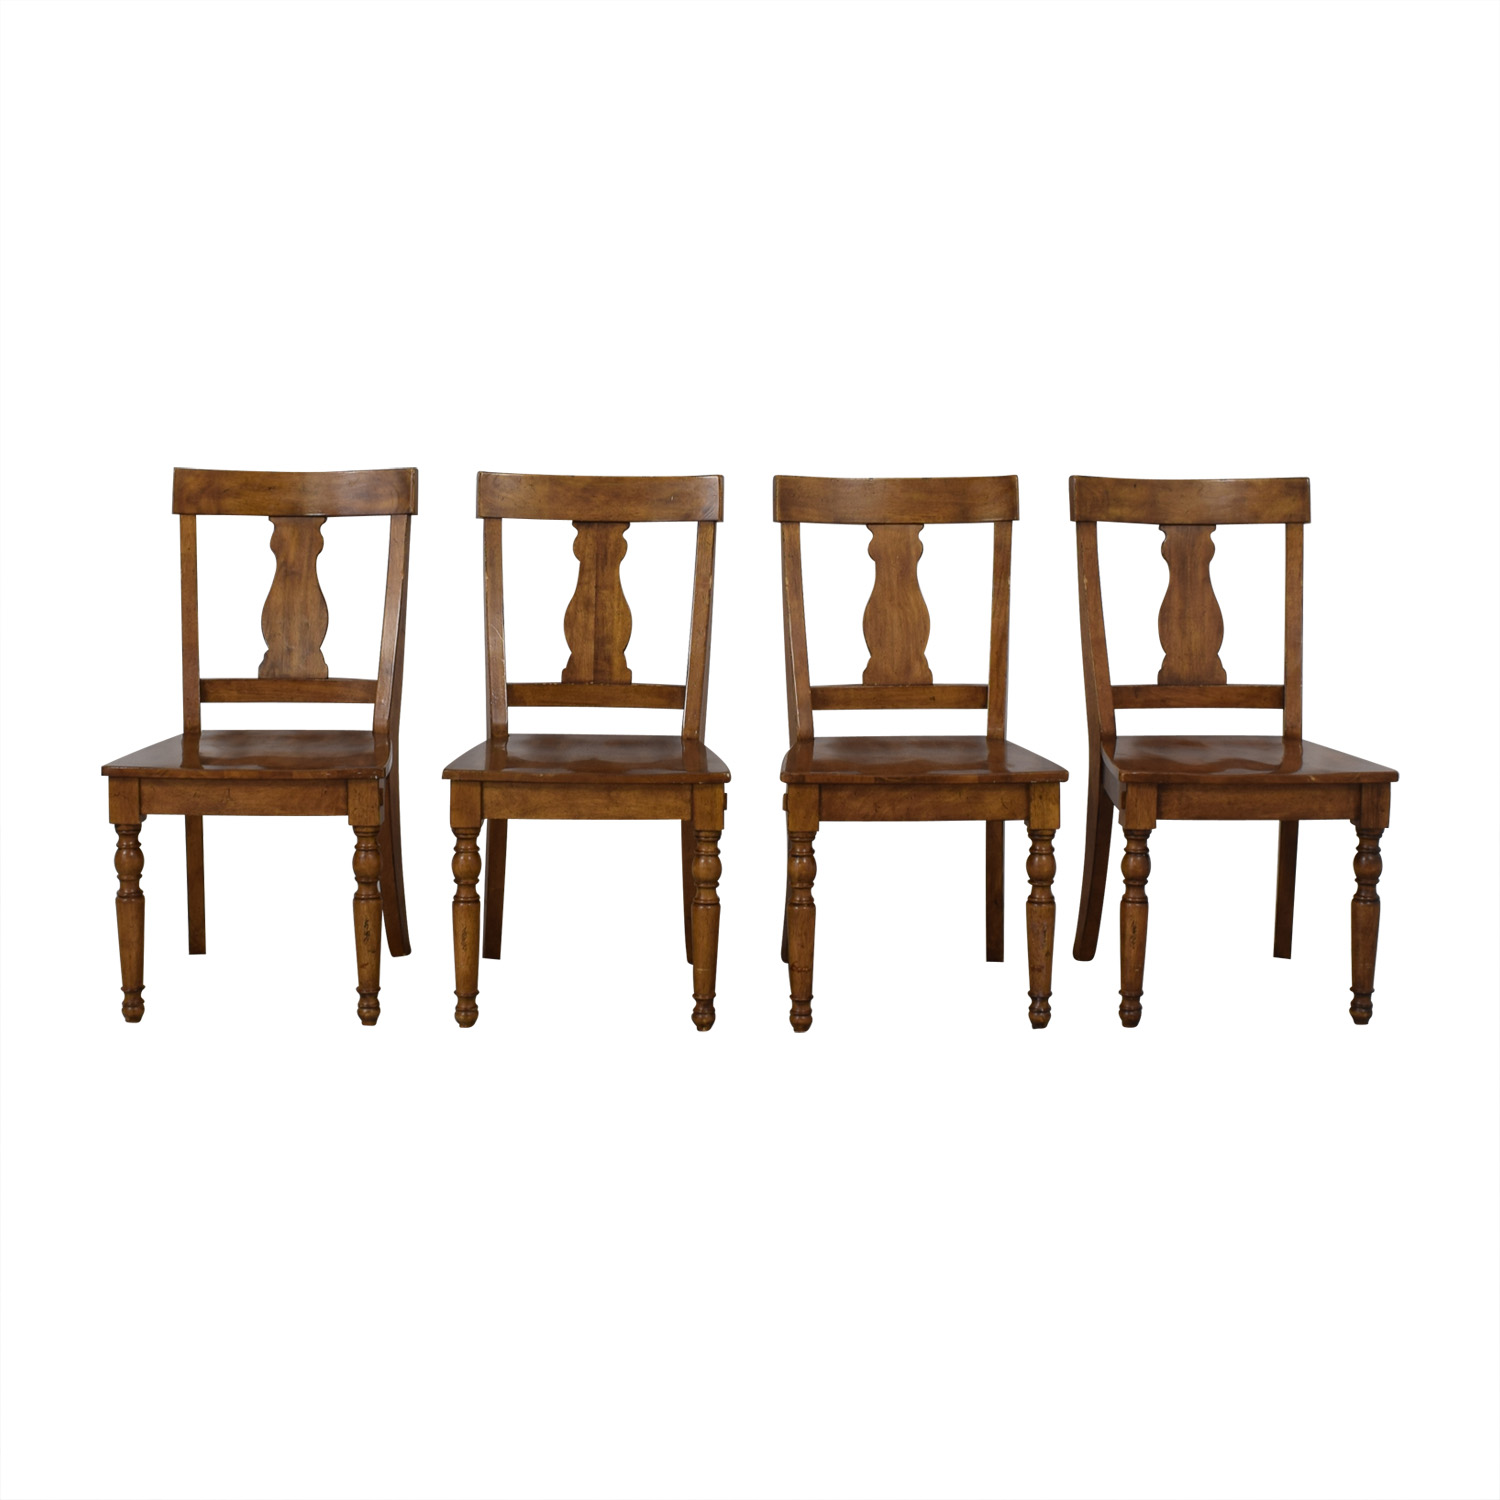 Pottery Barn Pottery Barn Harvest Dining Side Chairs dimensions